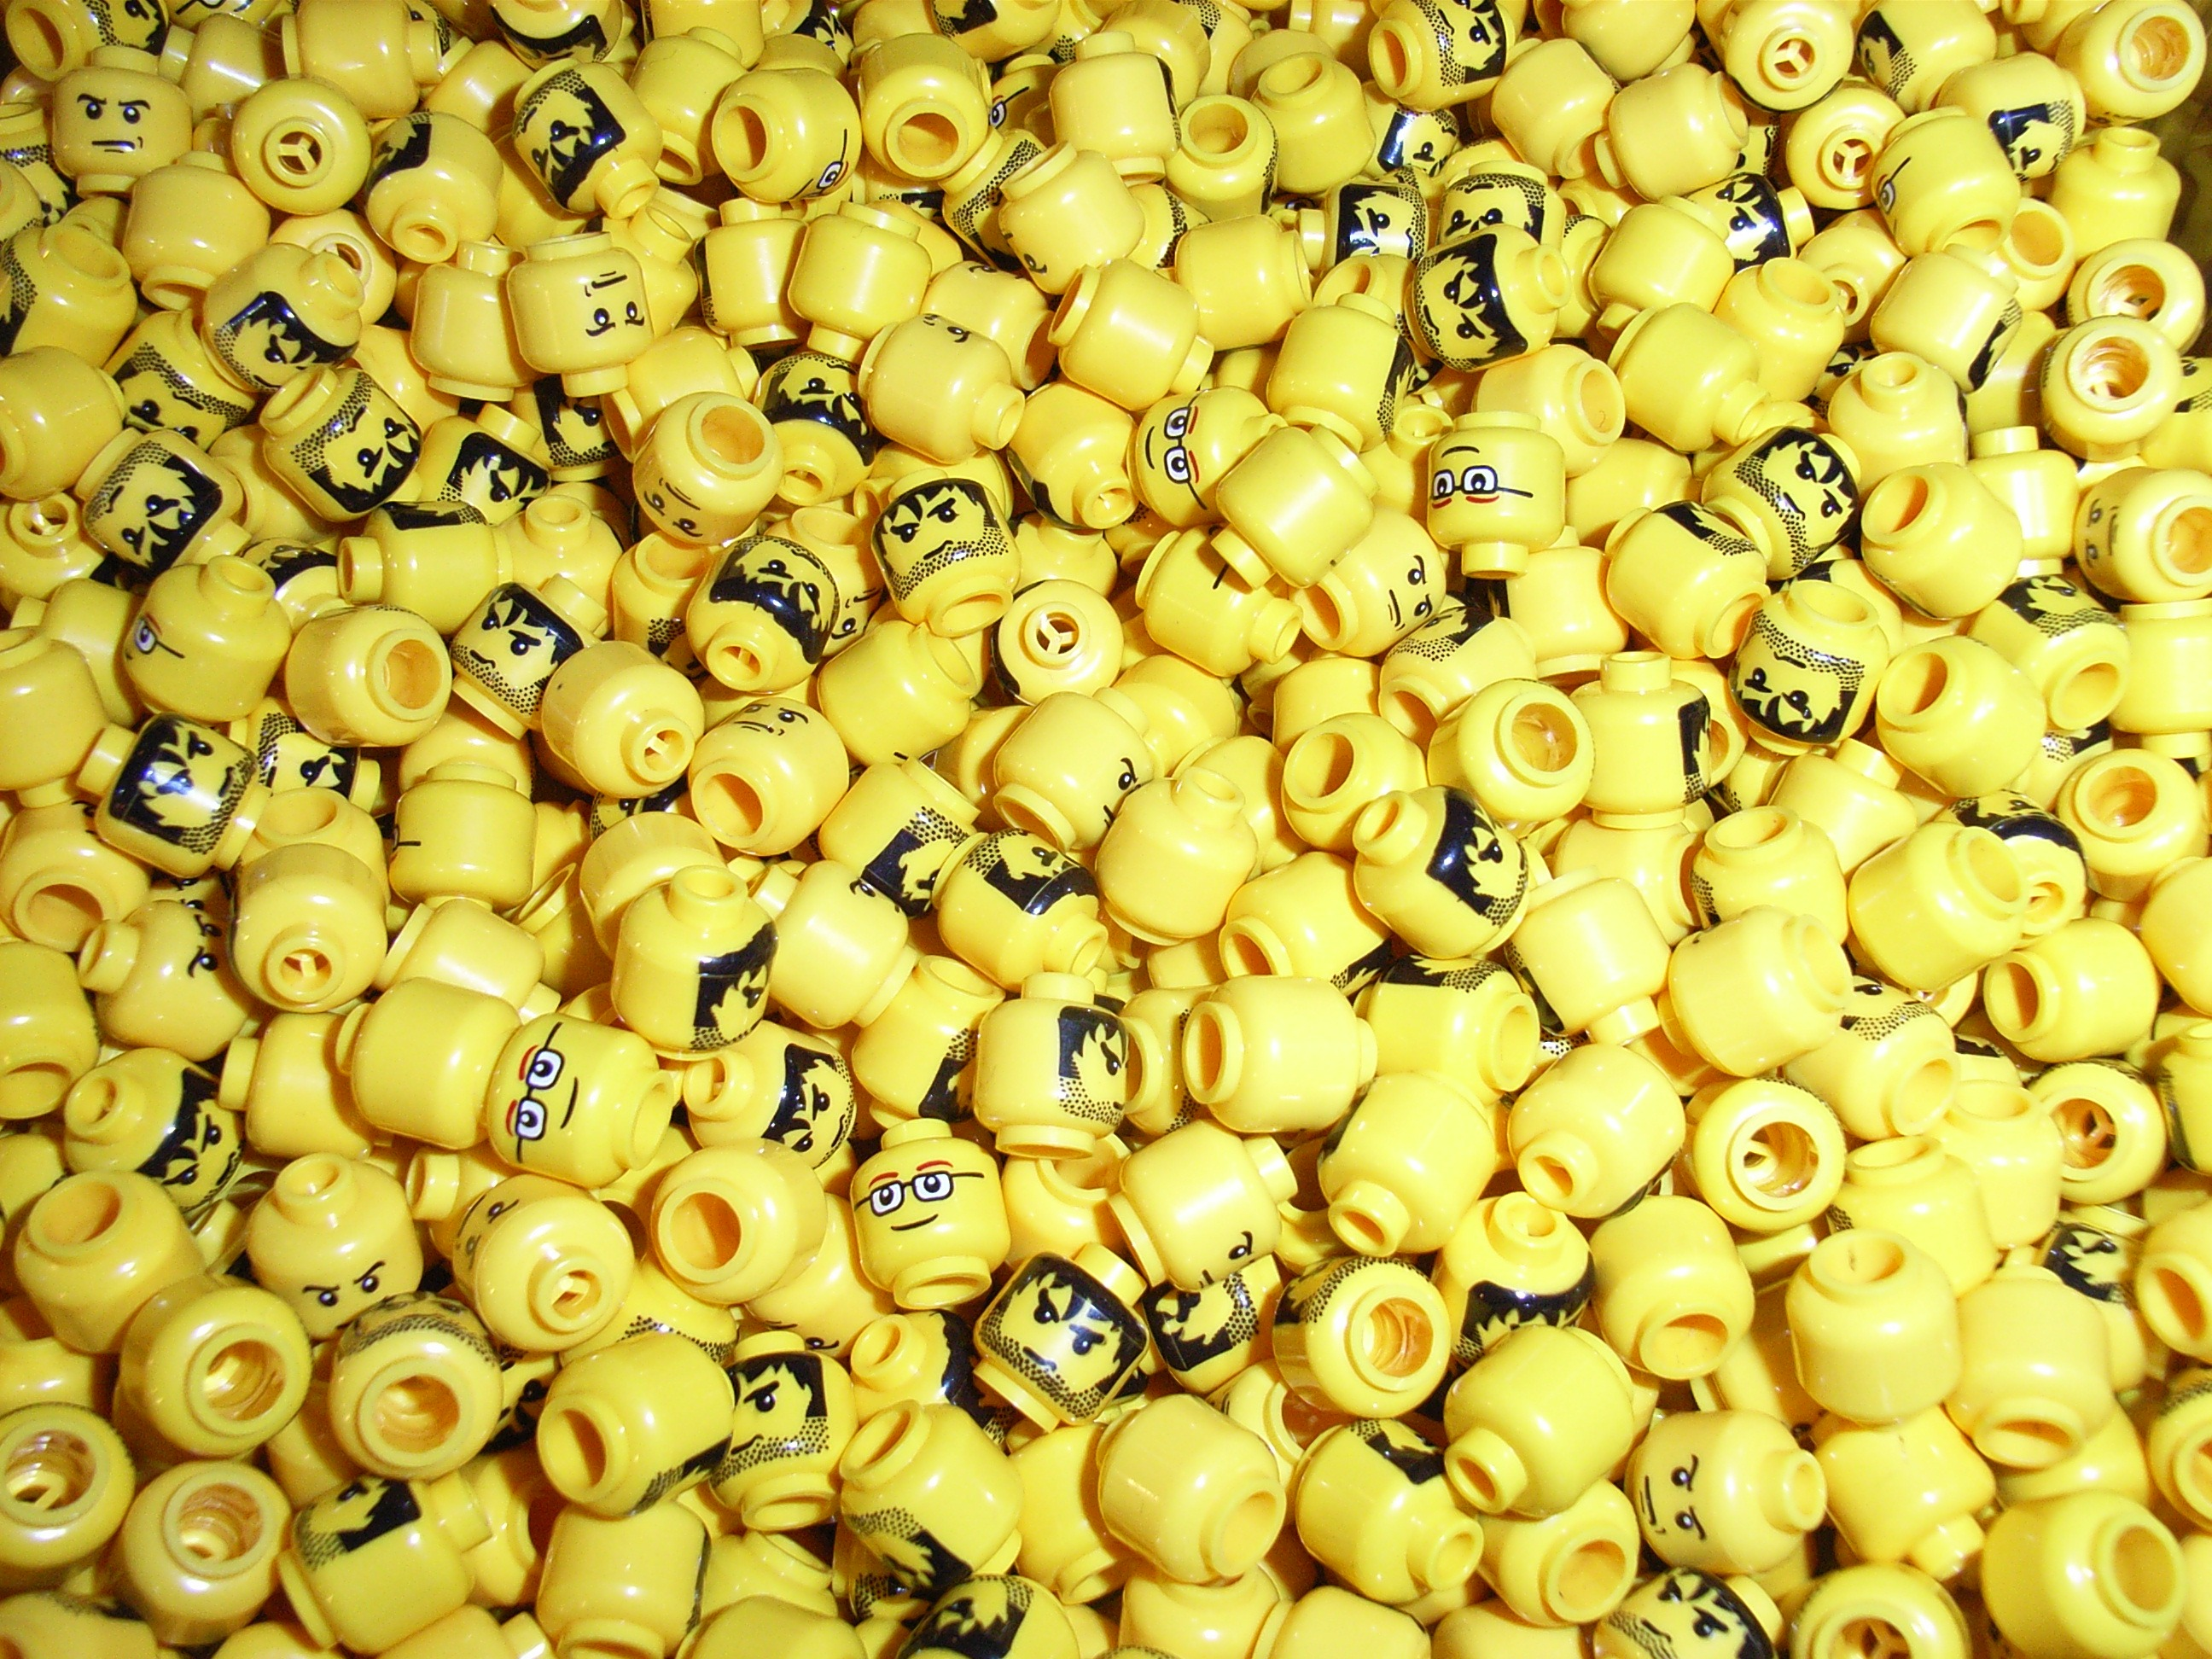 Cute Wallpapers For Lg Phones Yellow Lego Heads Full Hd Wallpaper And Background Image